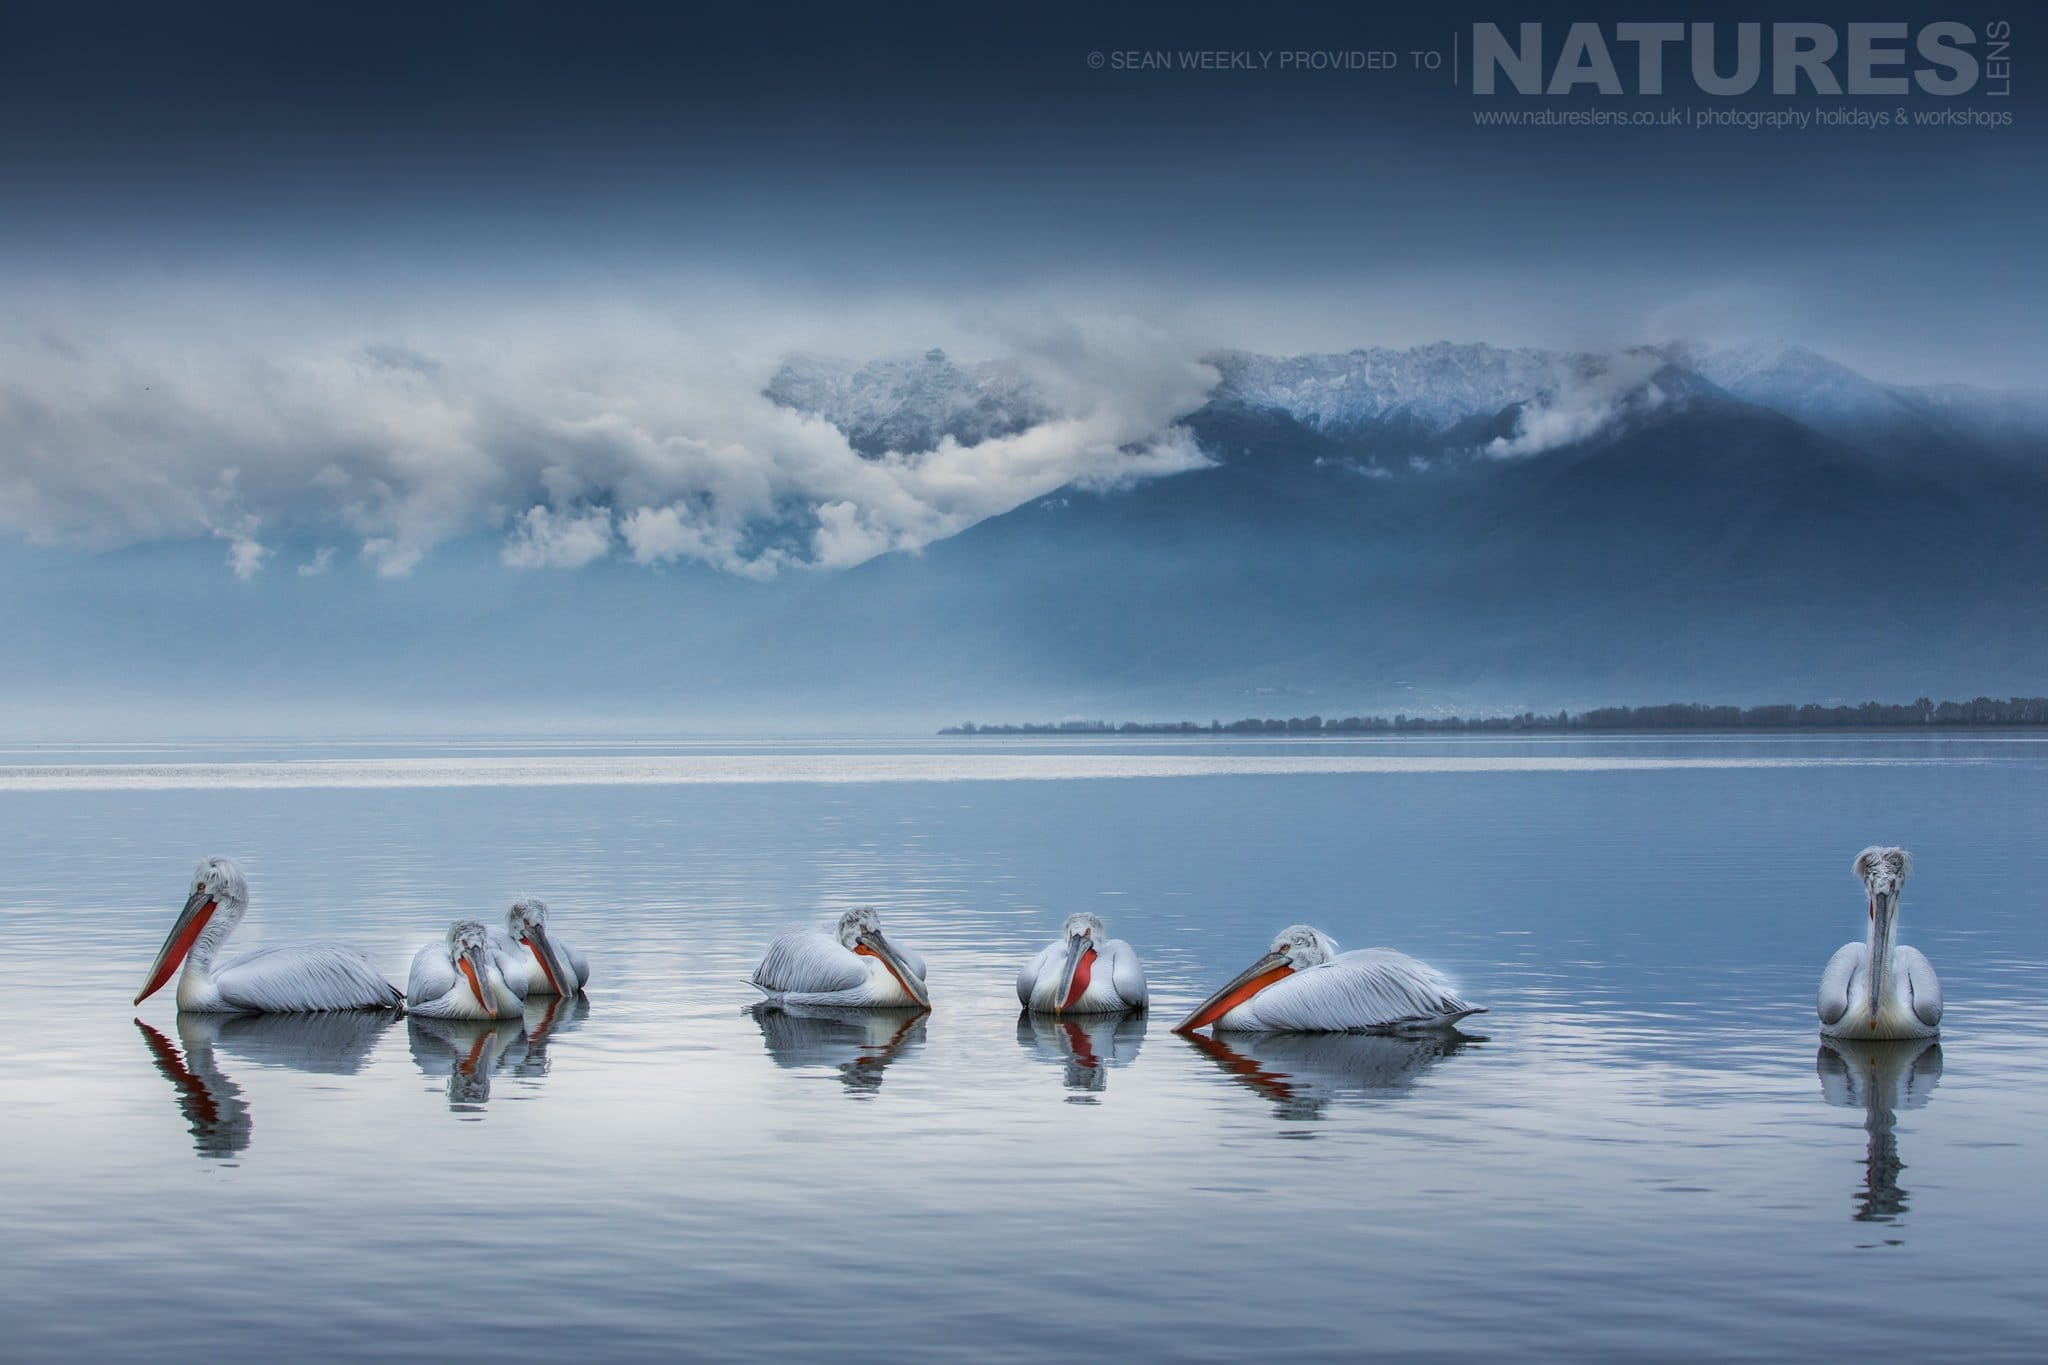 A Squadron Of Pelicans Floating On The Waters Of Lake Kerkini   Photographed During The NaturesLens Dalmatian Pelicans Of Greece Photography Holiday